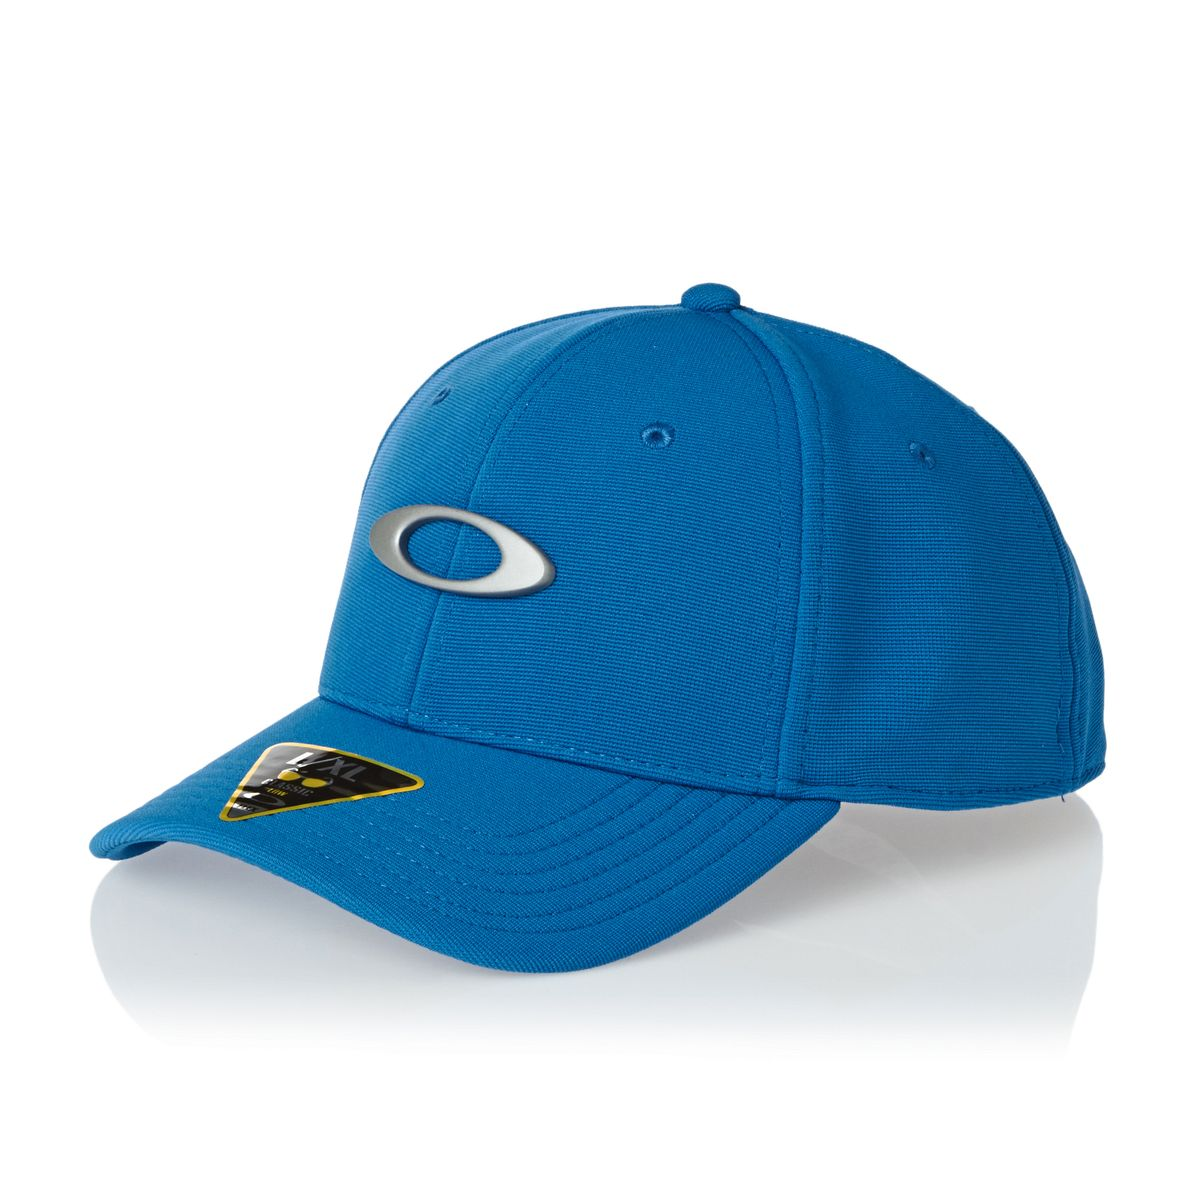 NEW Oakley Tincan Ozone Blue/Silver Fitted L/XL Golf Hat/Cap